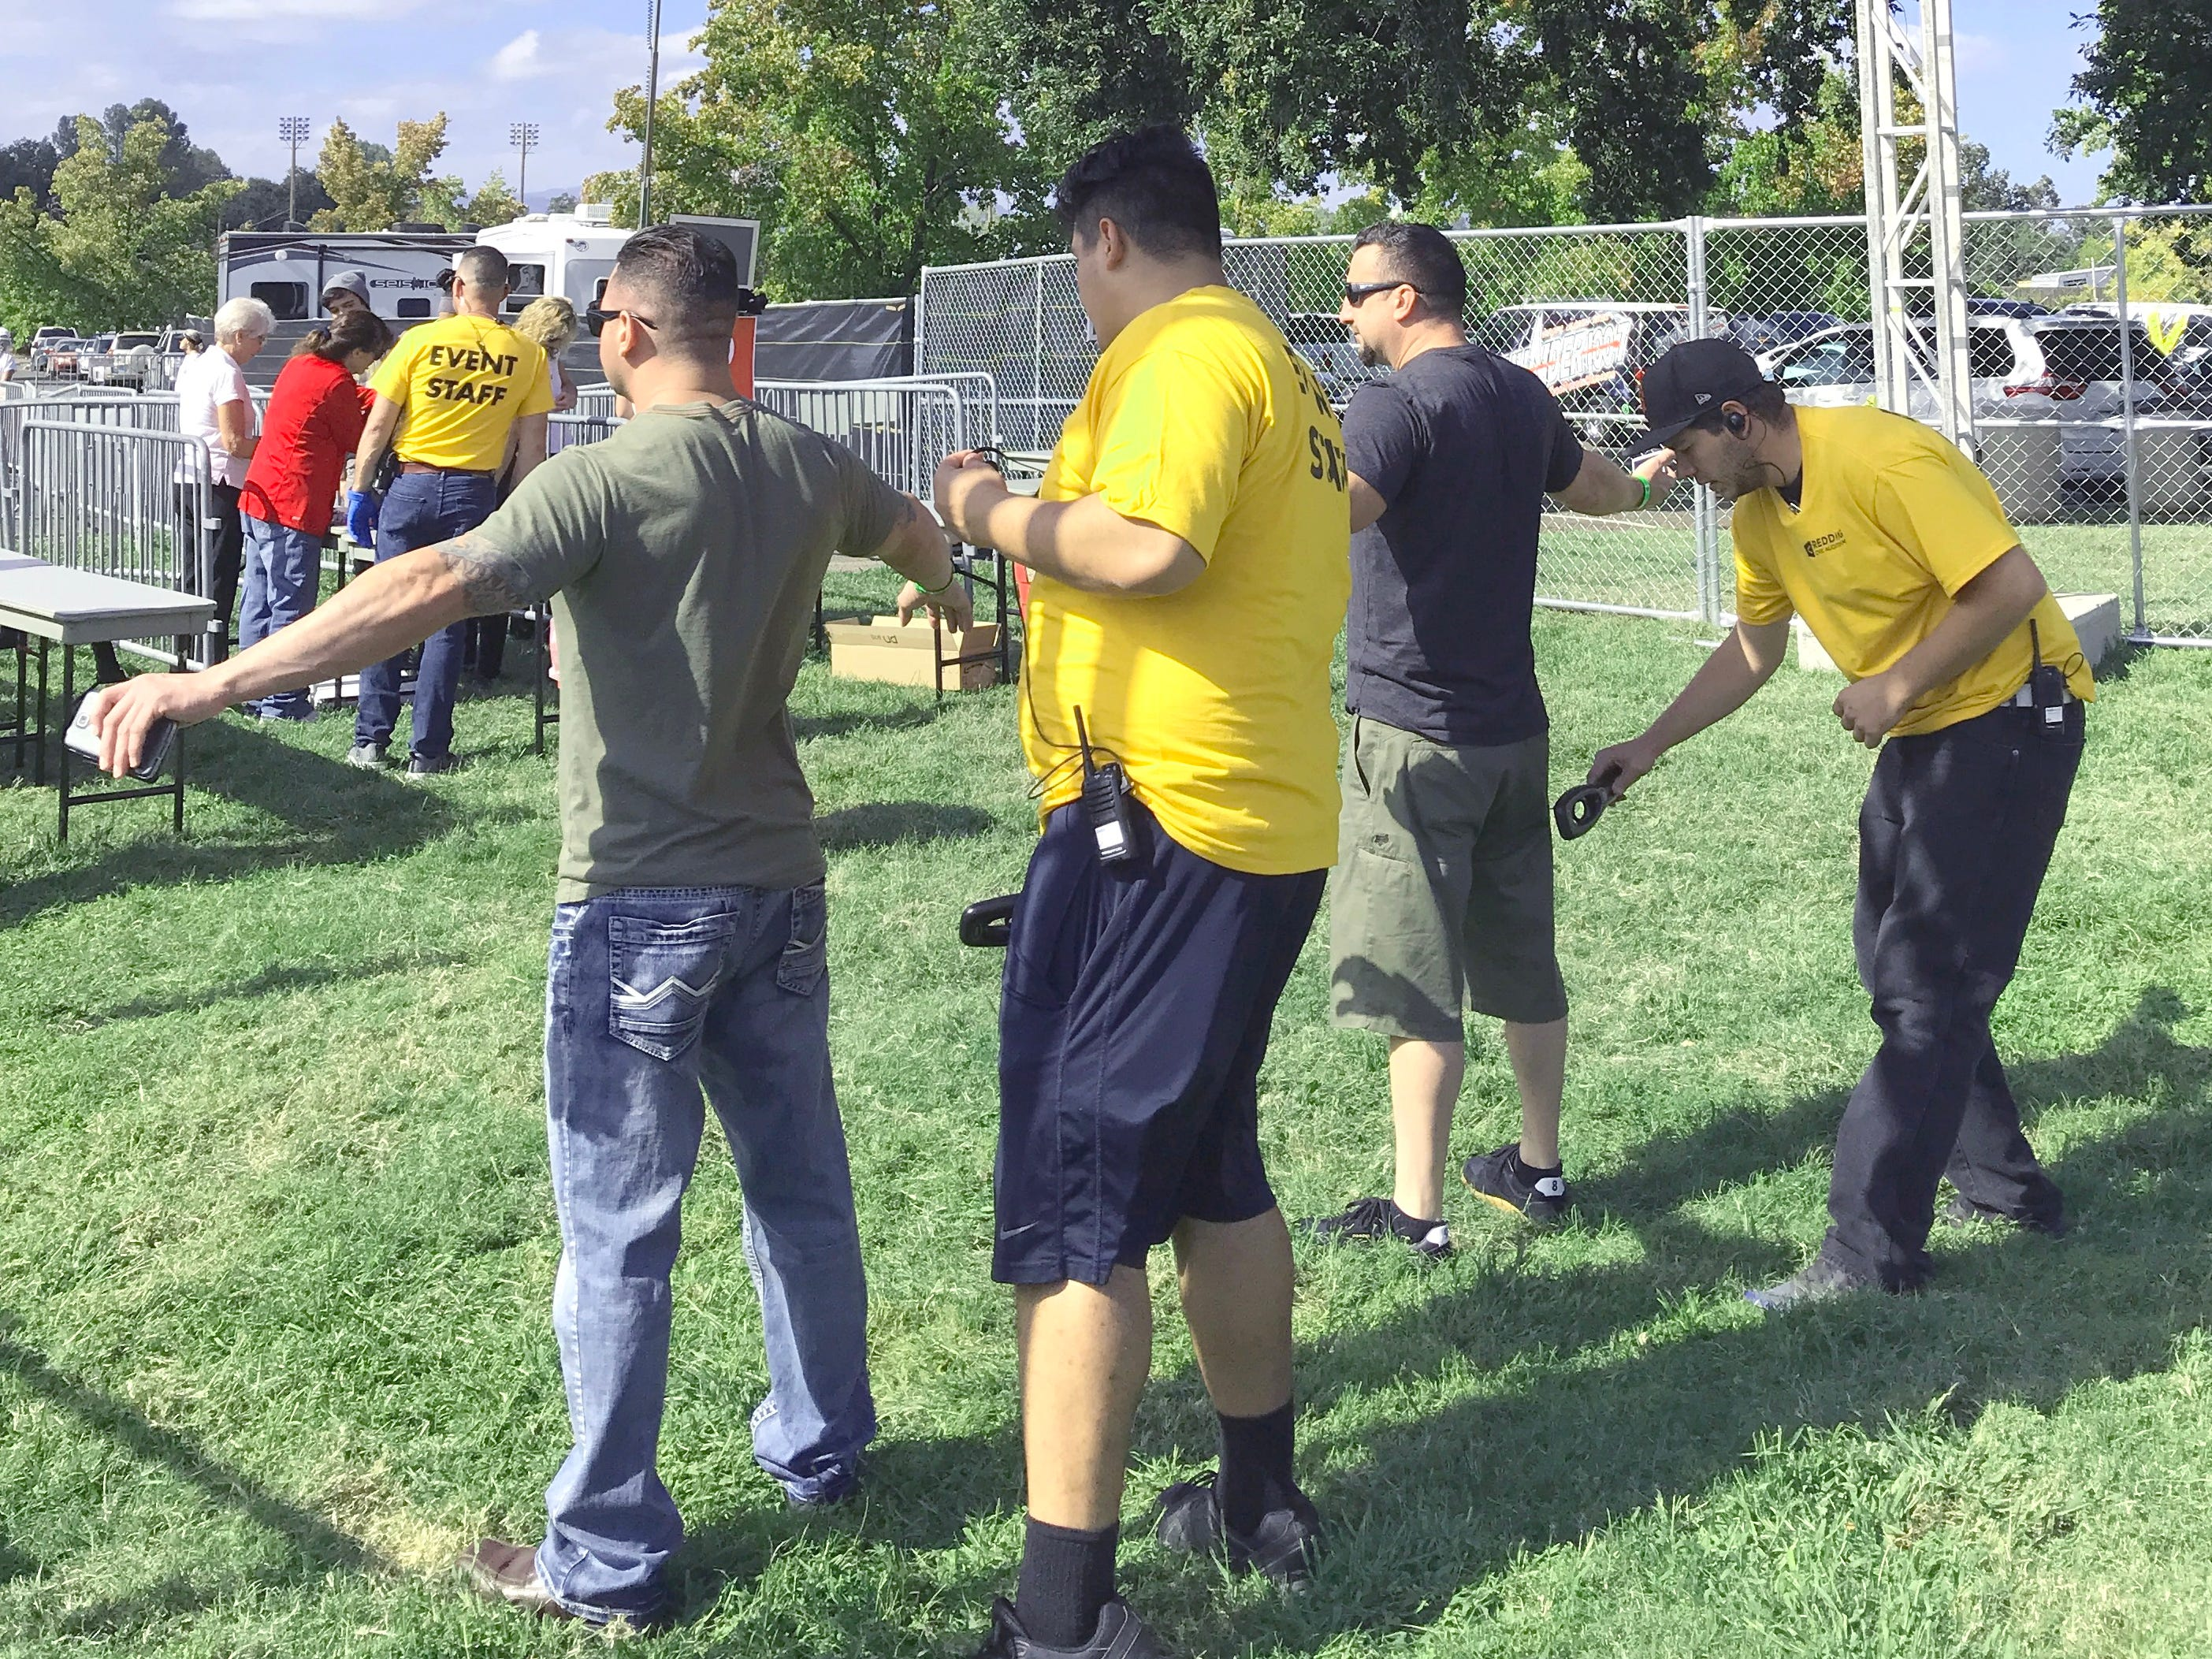 Festival-goers get the OK from security Saturday at the Redd Sun fest at the Redding Civic Auditorium.